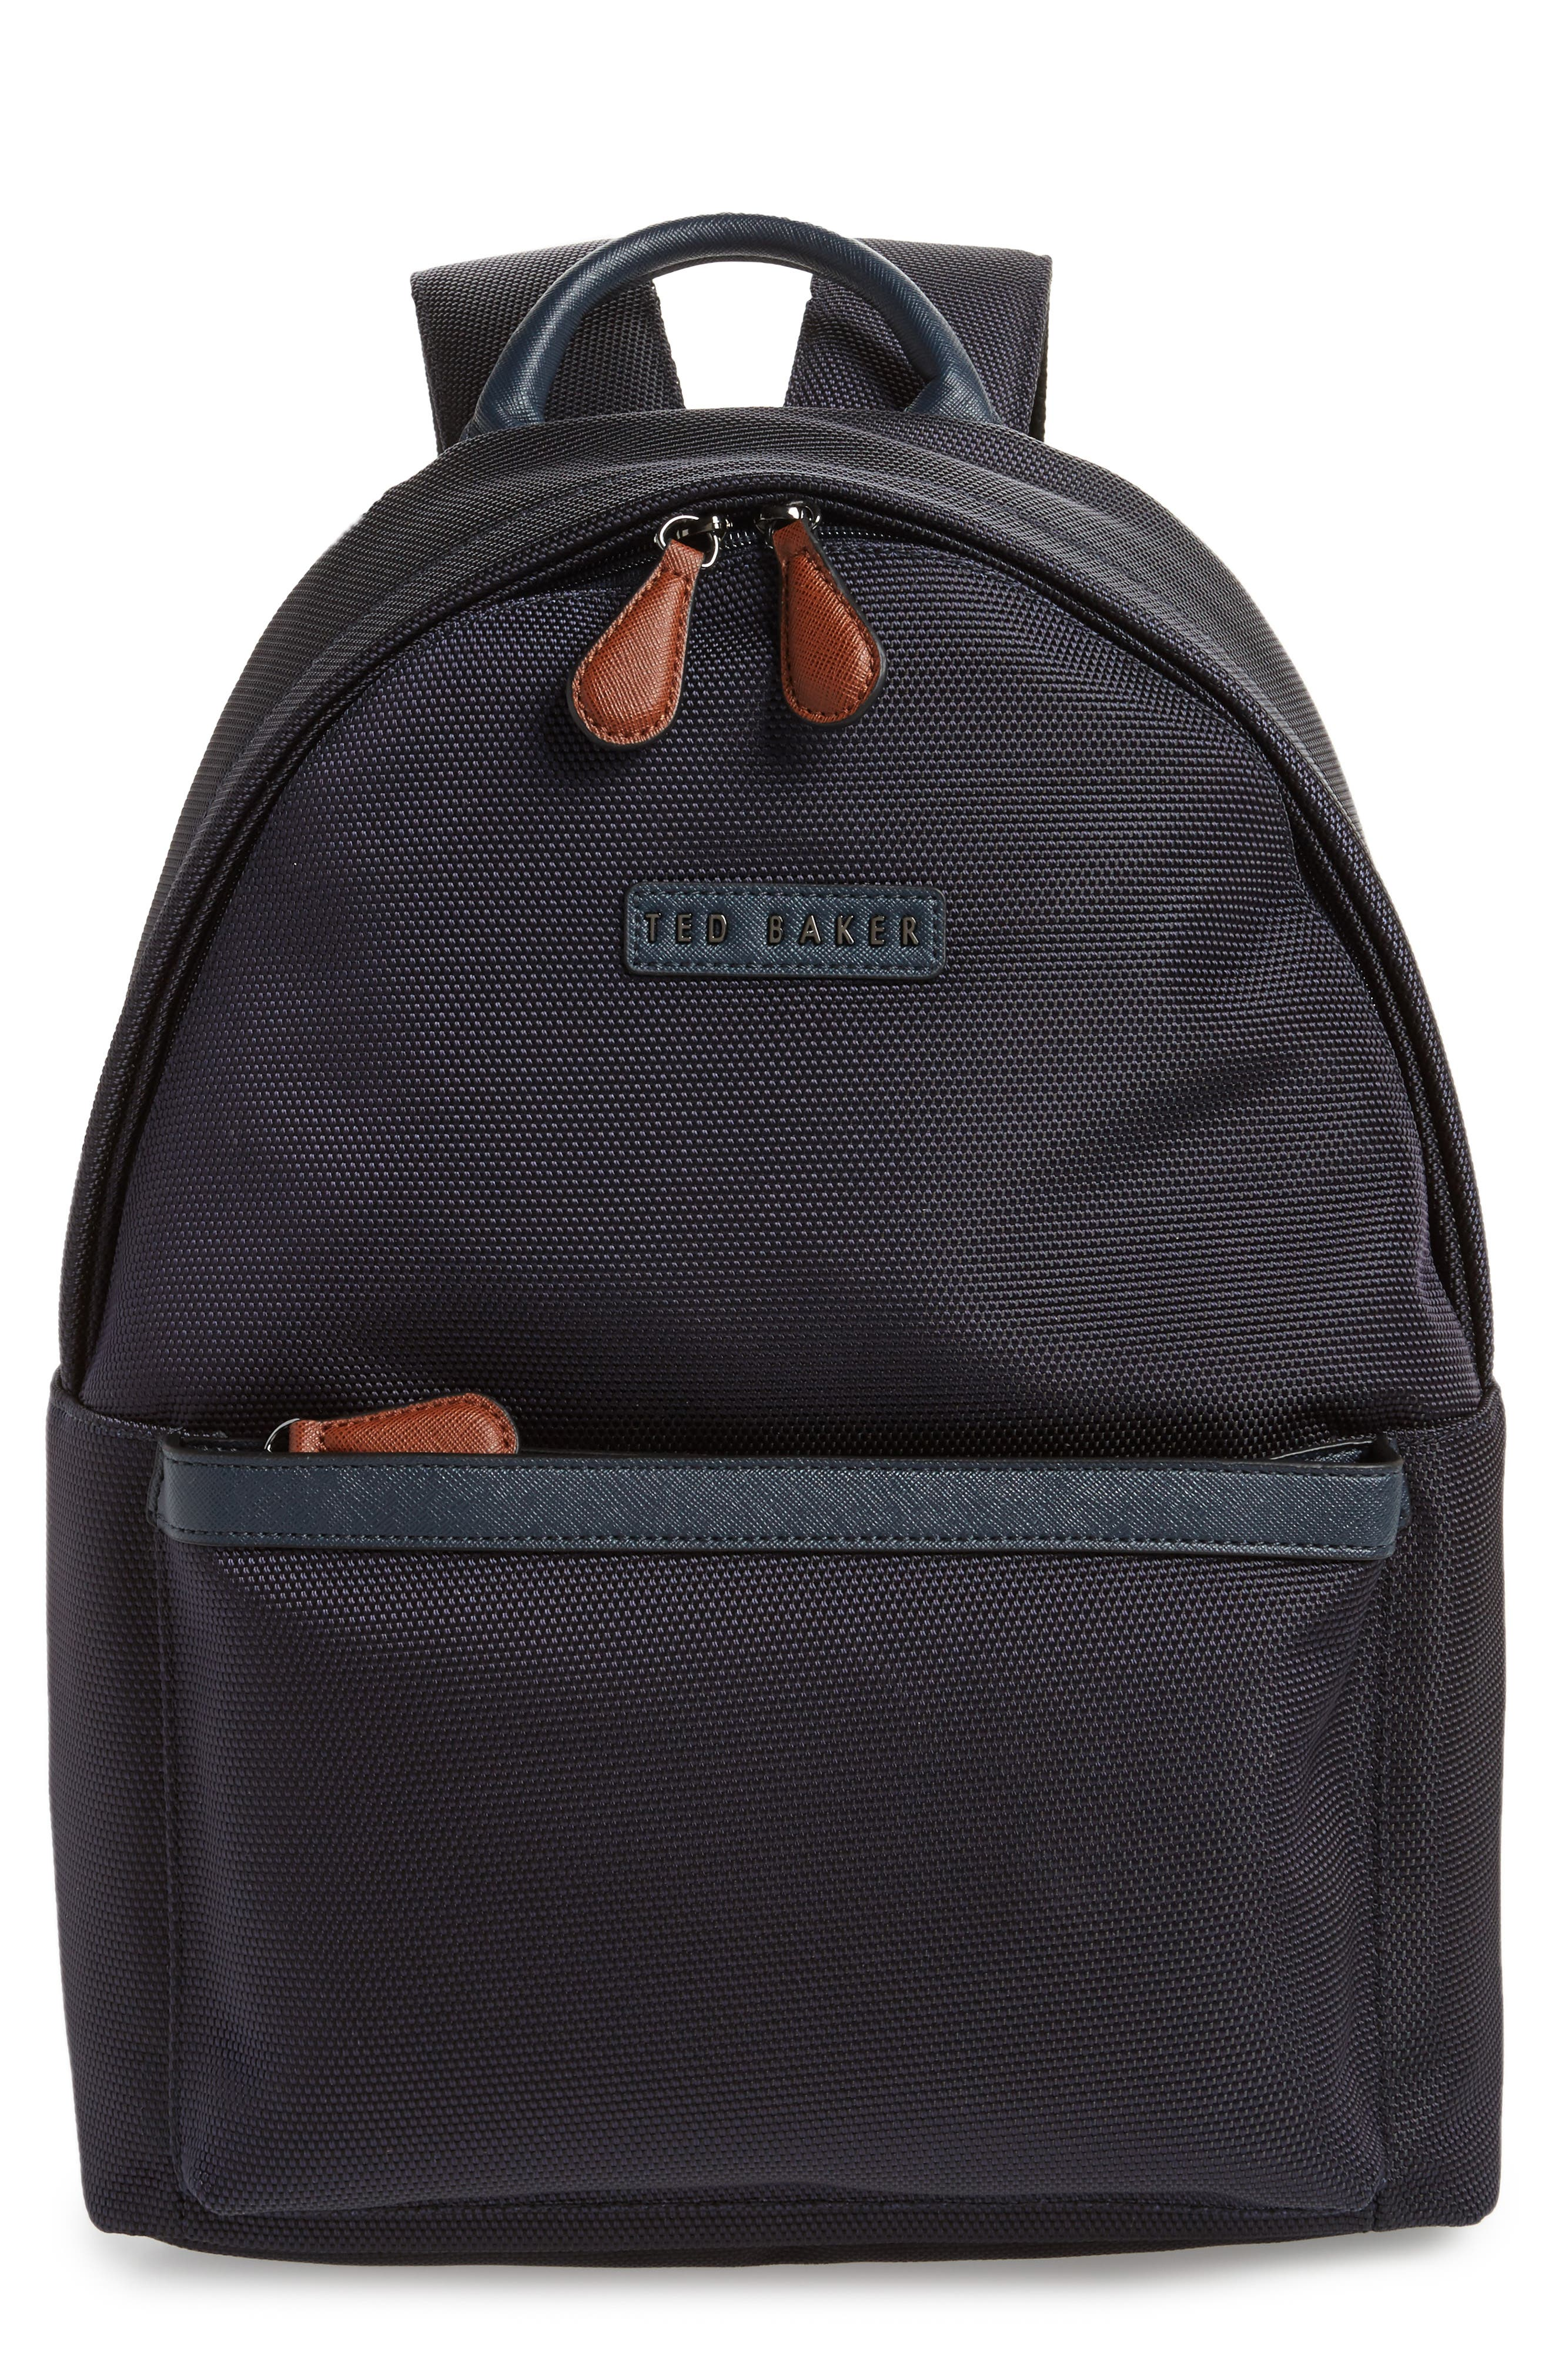 Brakes Backpack,                         Main,                         color, Navy